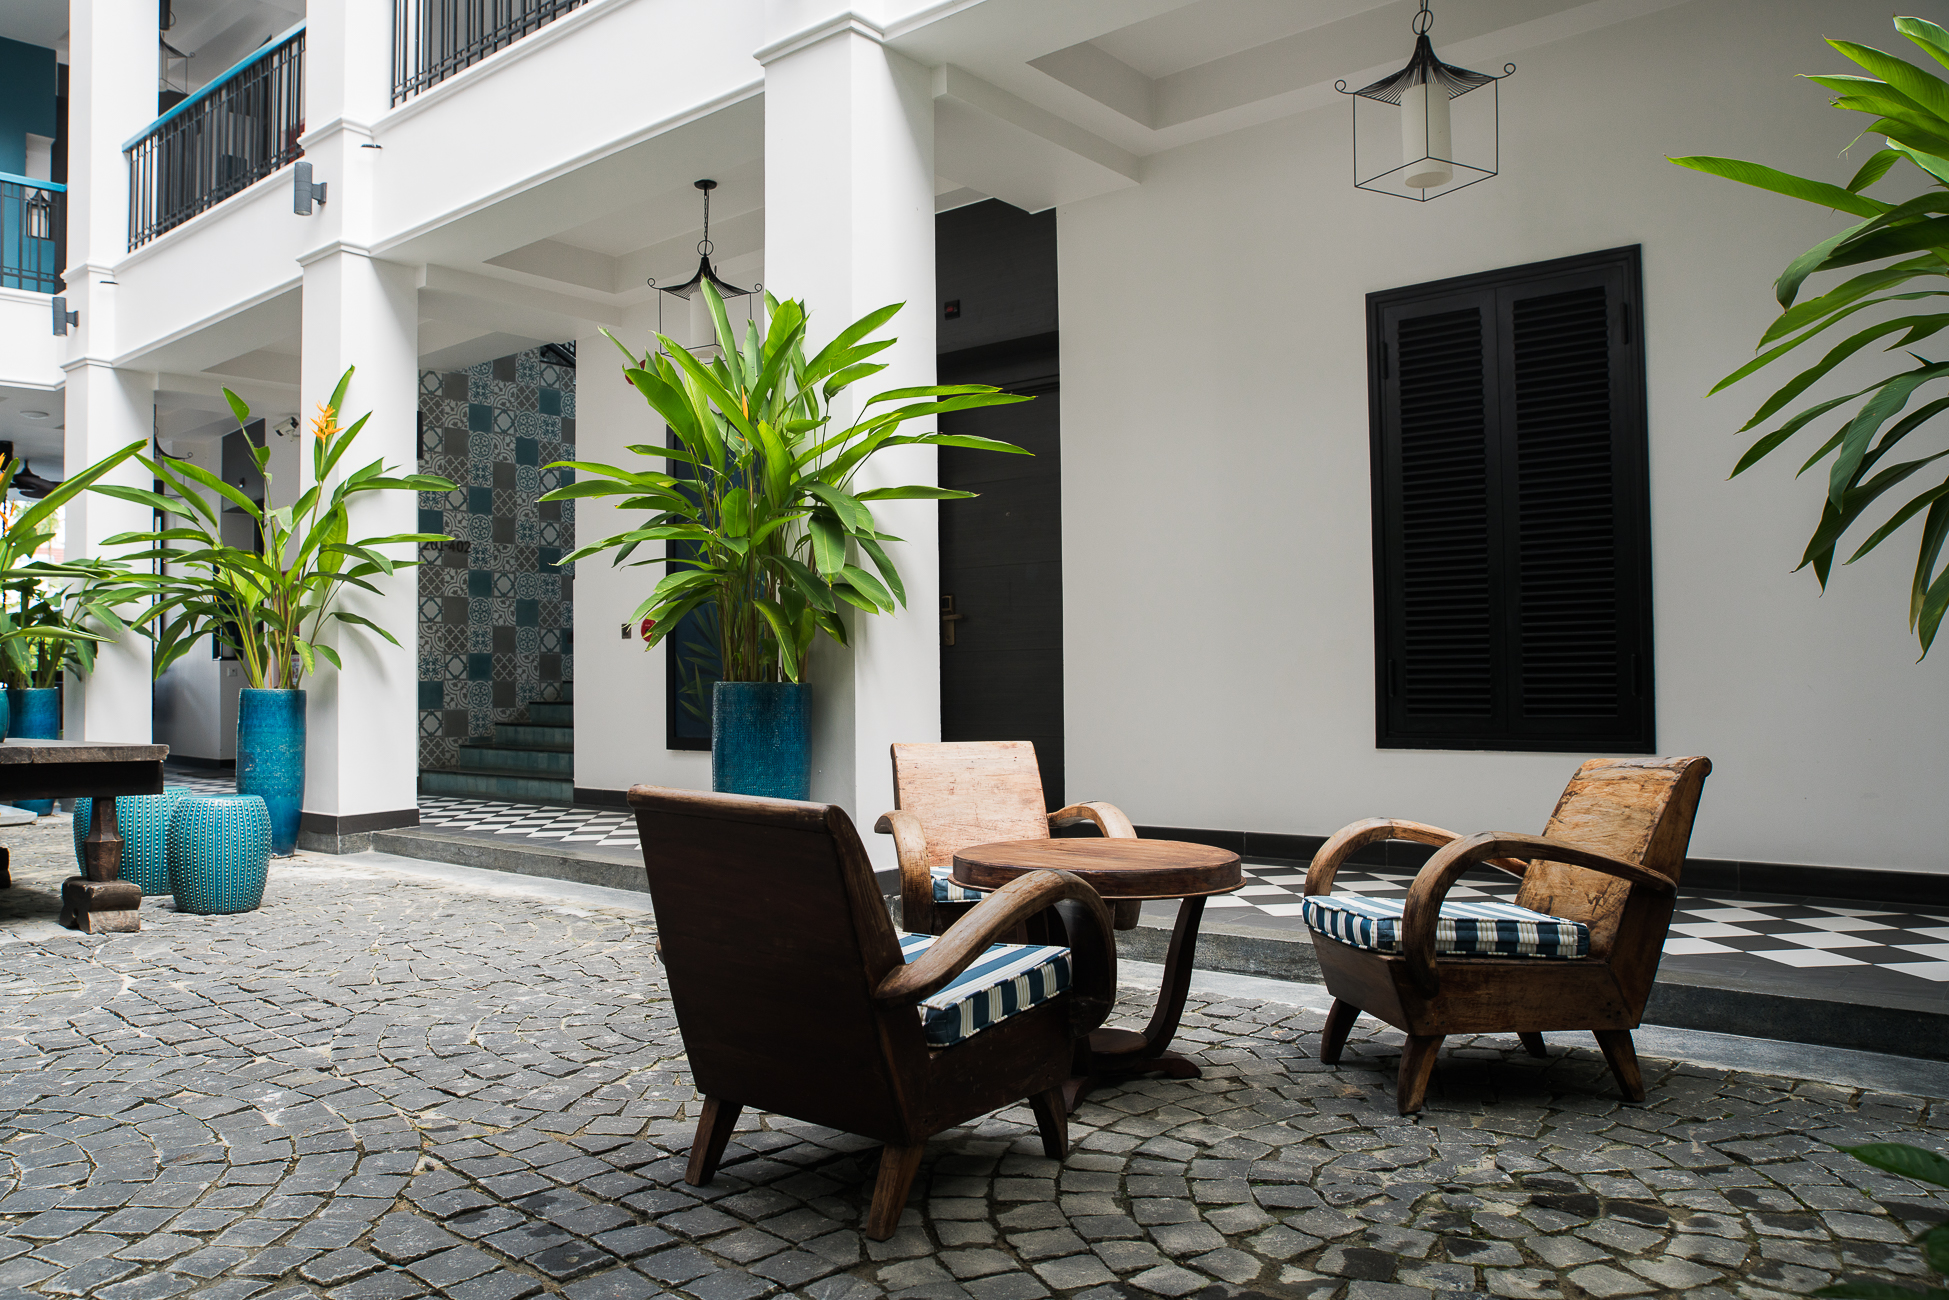 Maison Vy - Hoi An, Vietnam / See and Savour